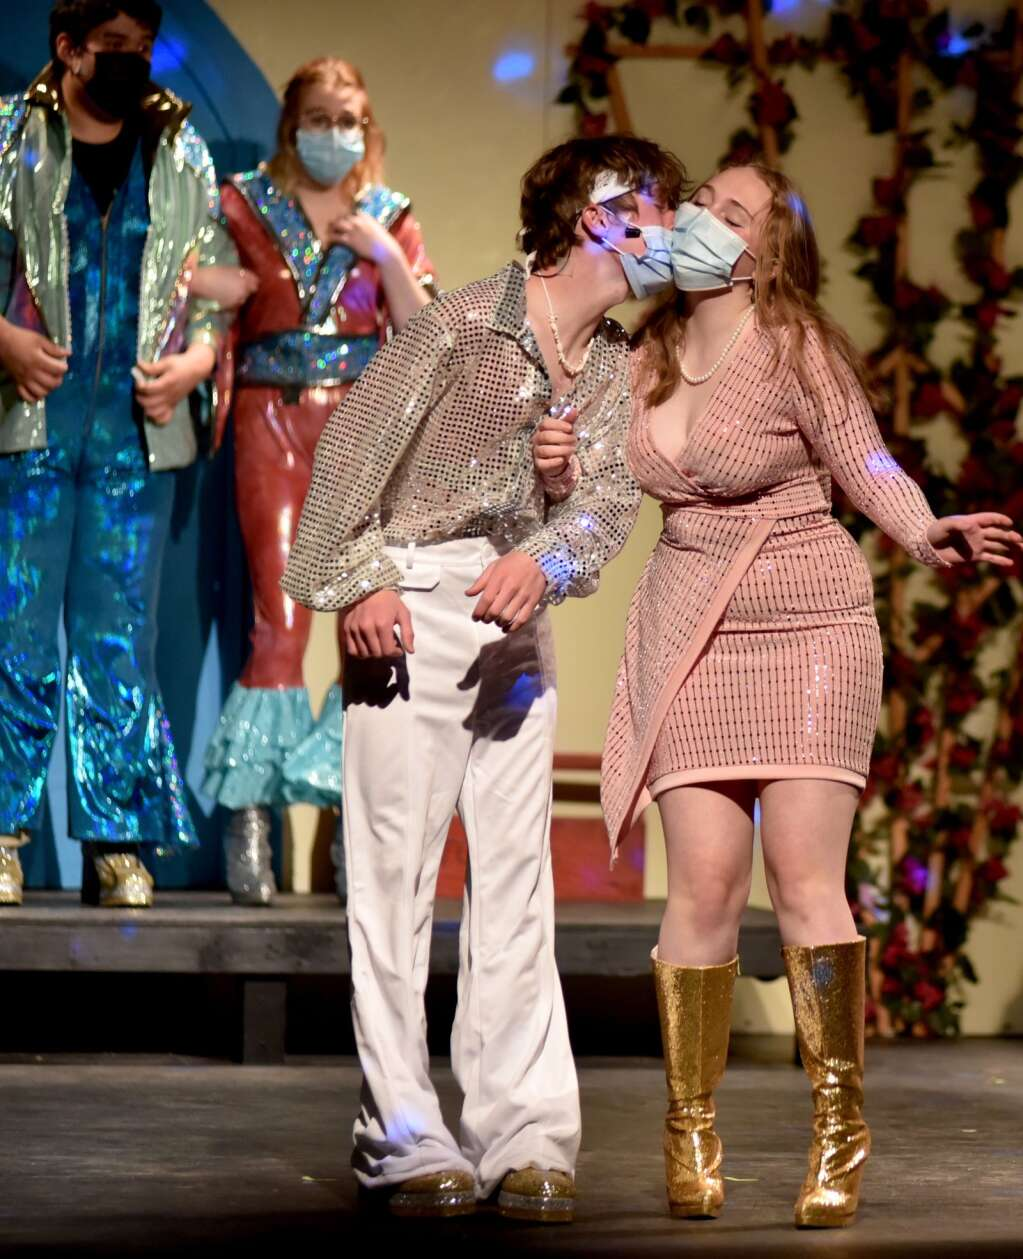 Middle Park junior Connor Murdoch as Sky gives a masked smooch to Olivia Kendziorski as Sophie.